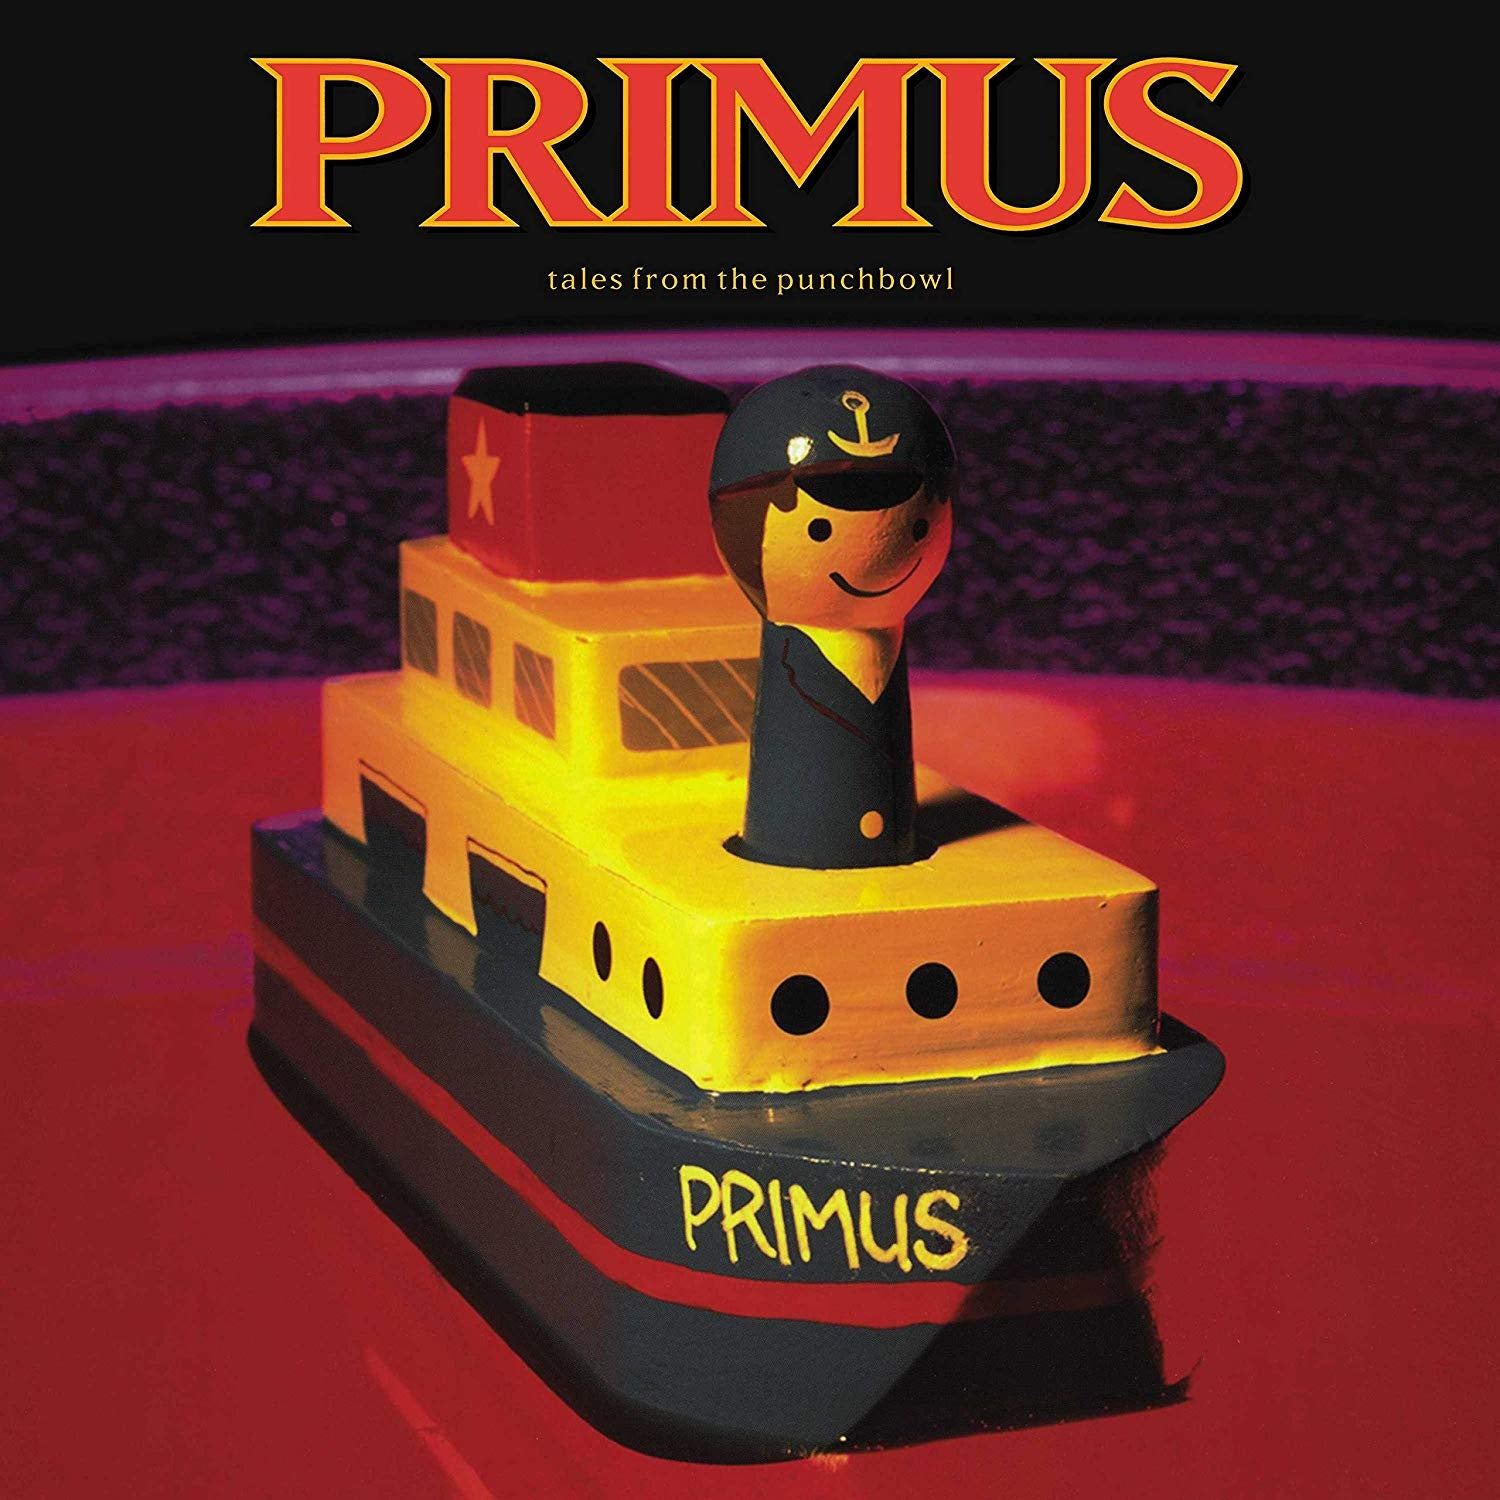 Primus ‎–Tales From The Punchbowl  - New Vinyl 2 Lp 2019 Limited Edition Color 180gram Vinyl - Alt-Rock / Funk Rock